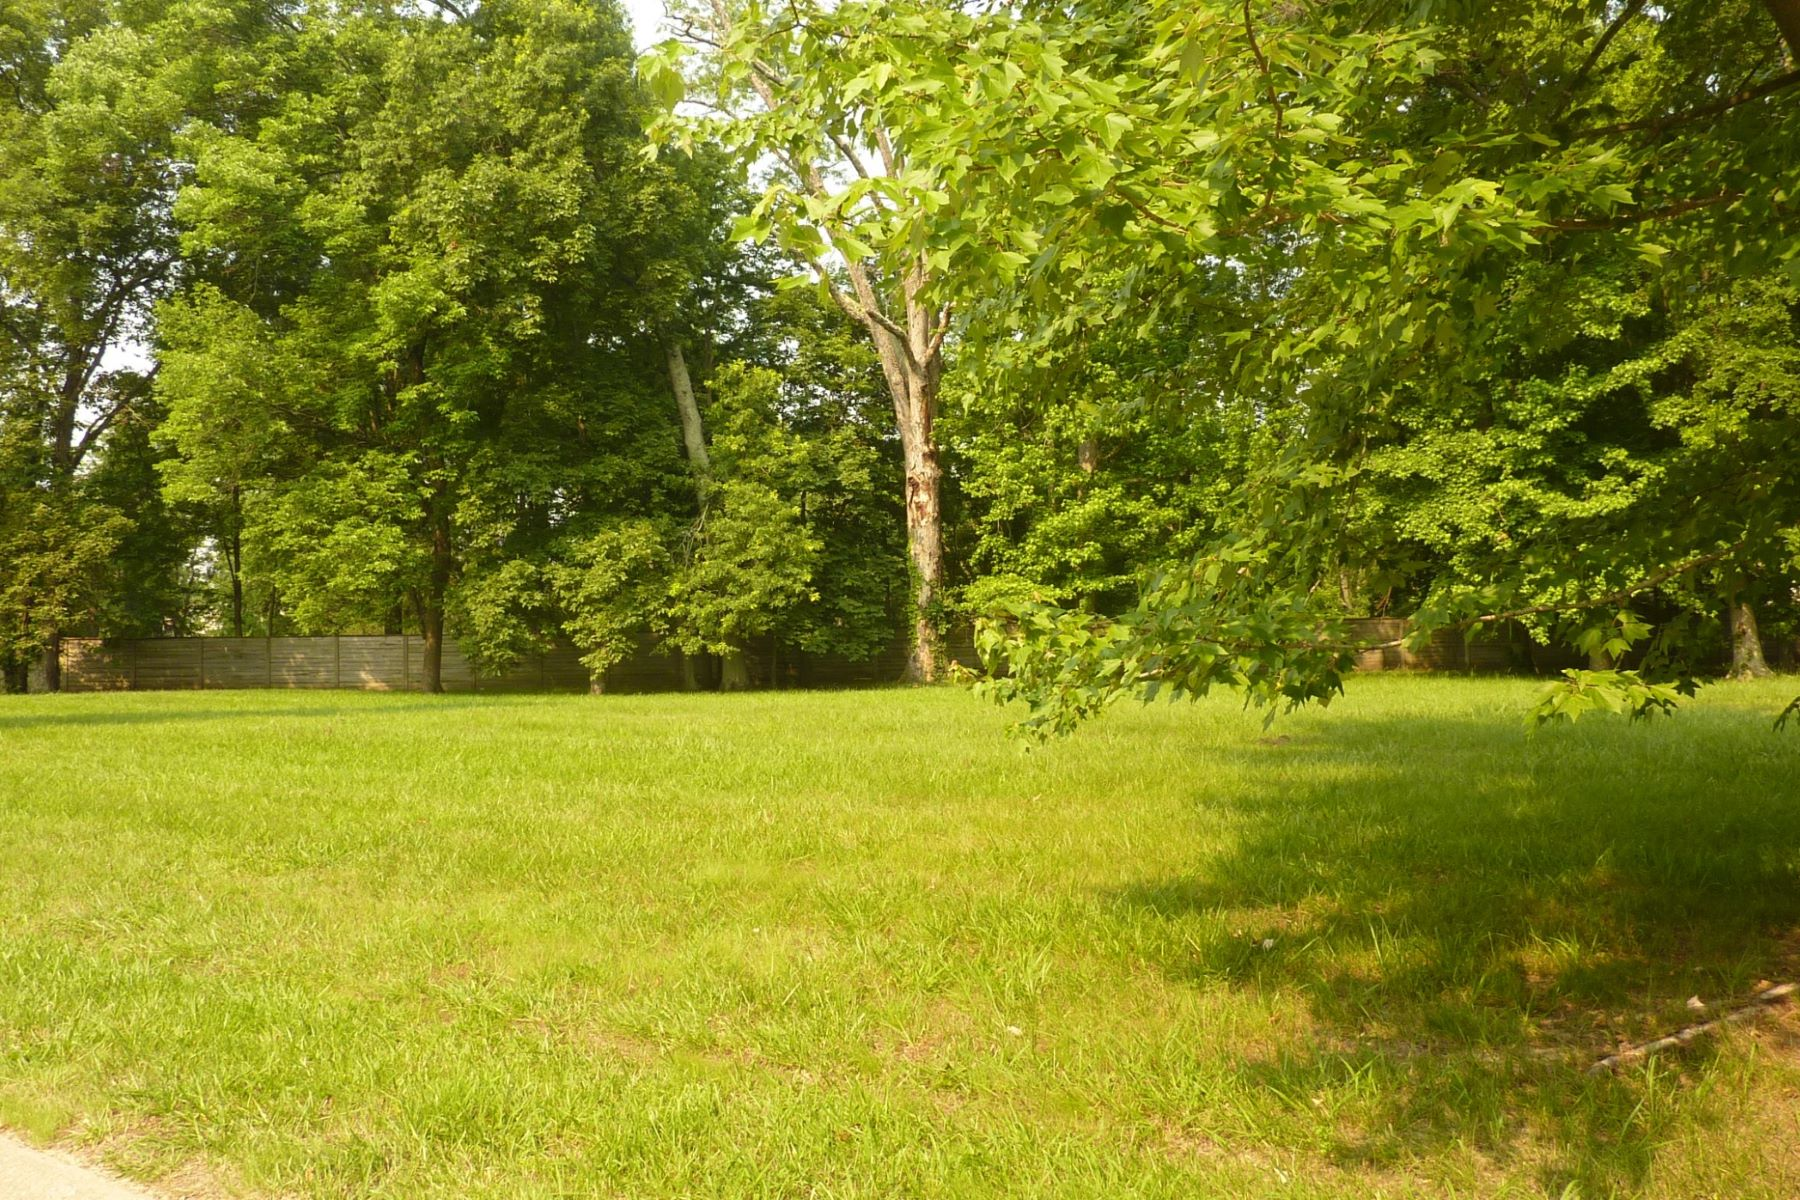 Additional photo for property listing at 6502 Sedgwicke Drive 6502 Sedgewick Drive Prospect, Kentucky 40059 United States